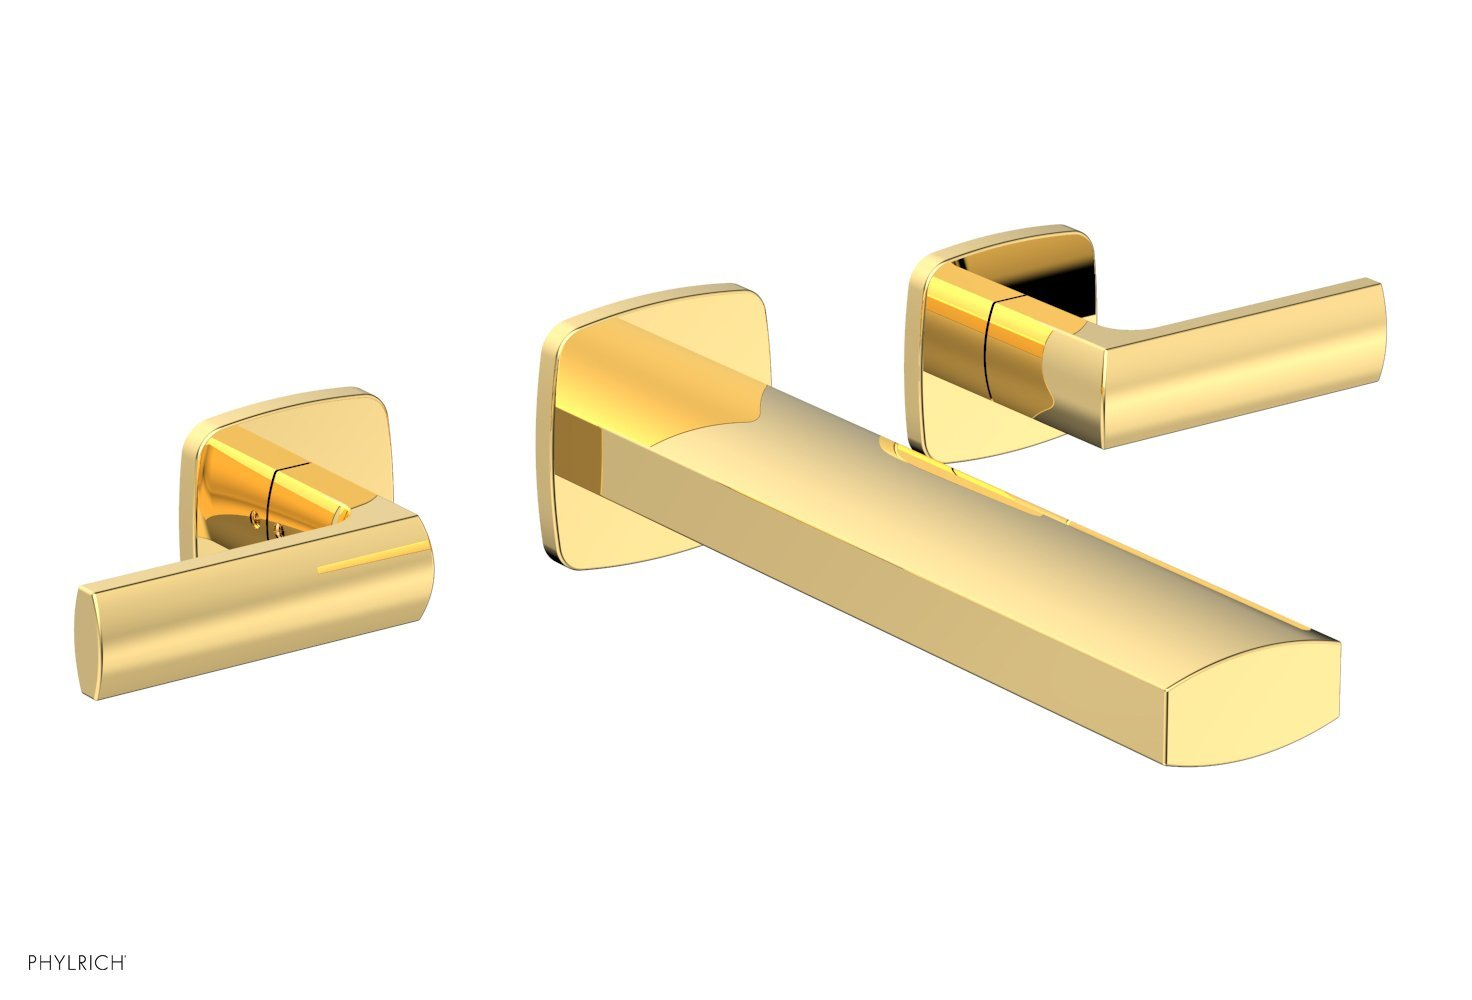 Phylrich 181-57-025 RADI Wall Tub Set - Lever Handles - Polished Gold